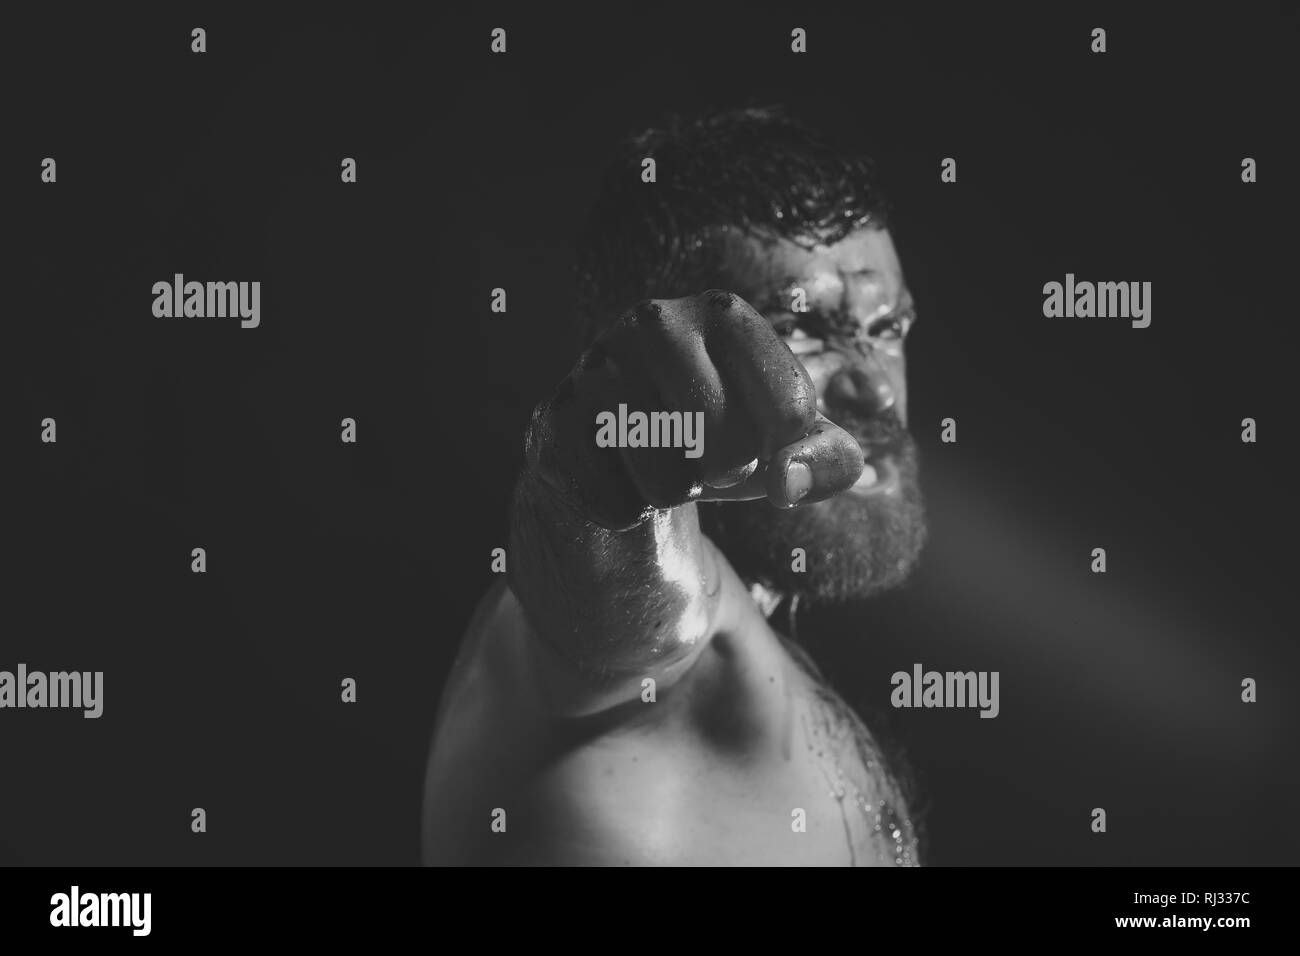 Fist with blood of bearded man on black background - Stock Image